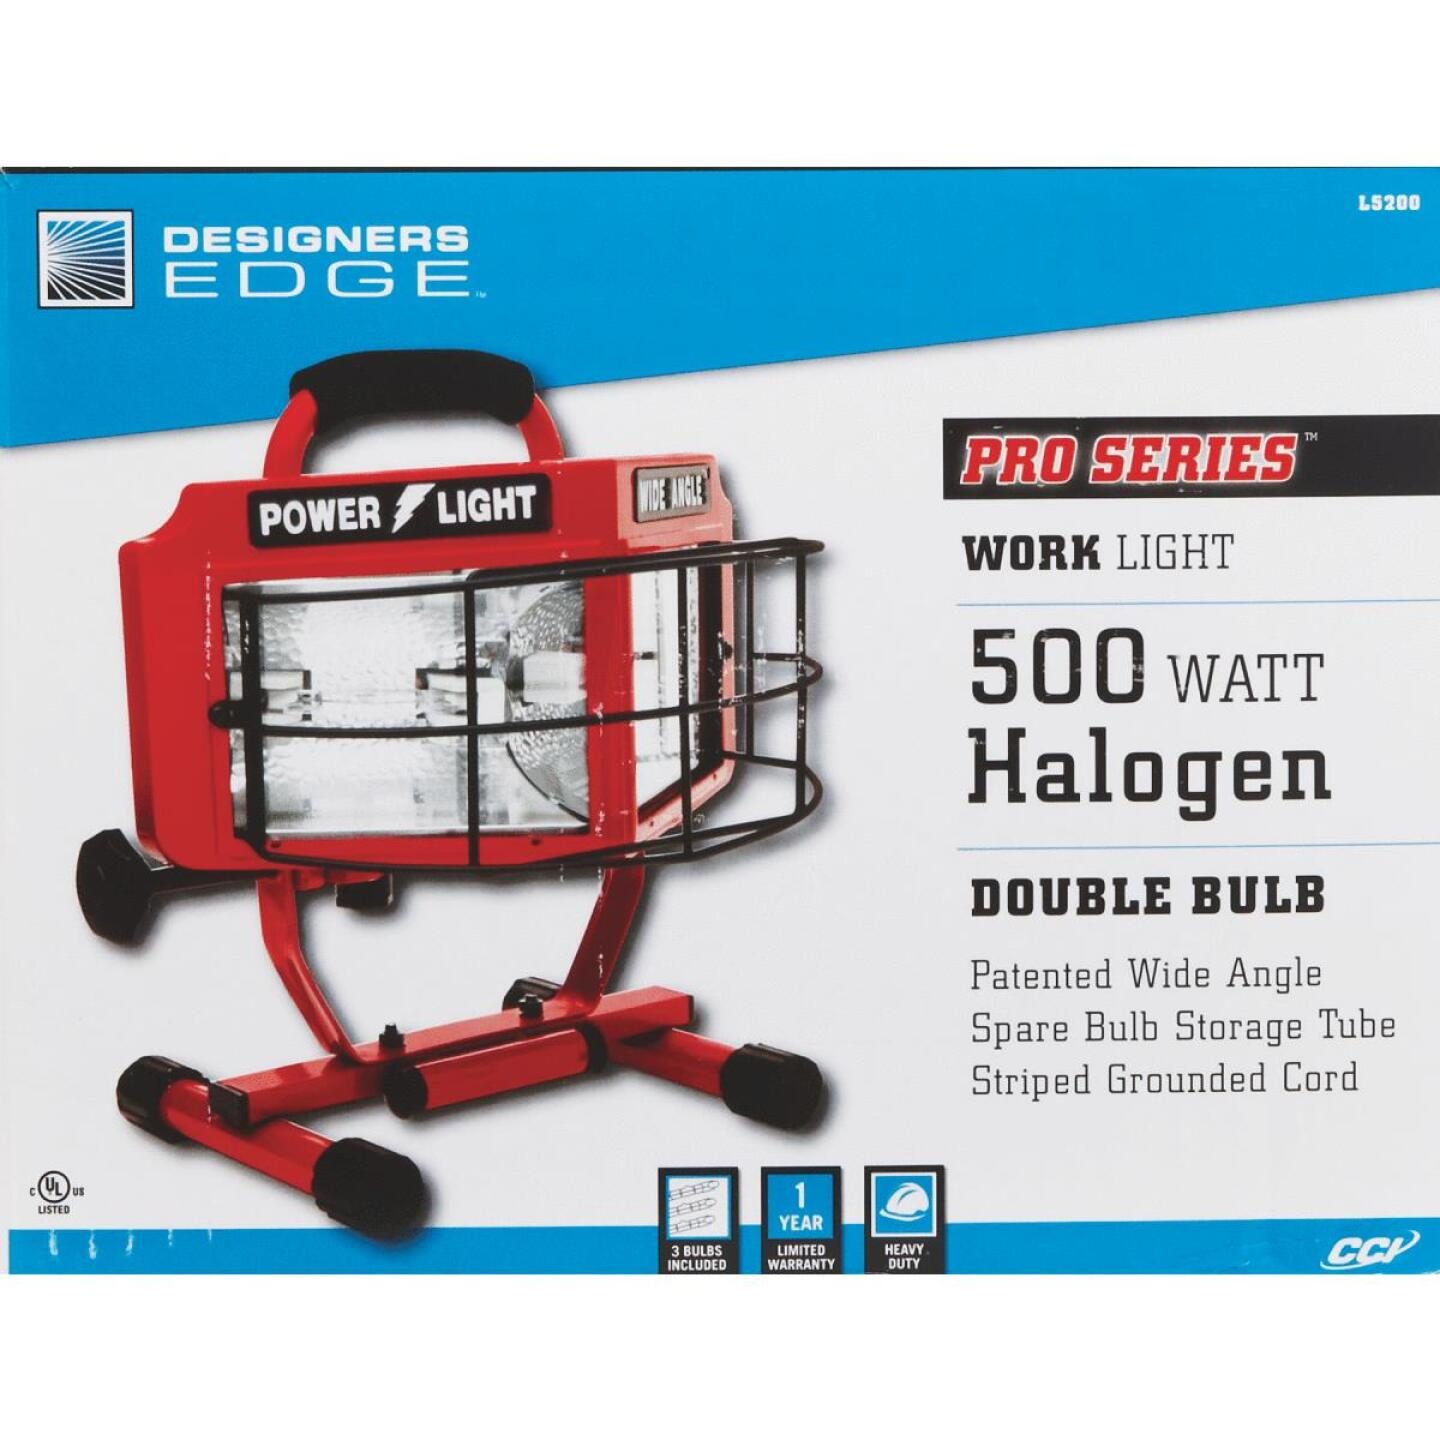 Designers Edge Power Light 8000 Lm. Halogen H-Stand Portable Work Light Image 3